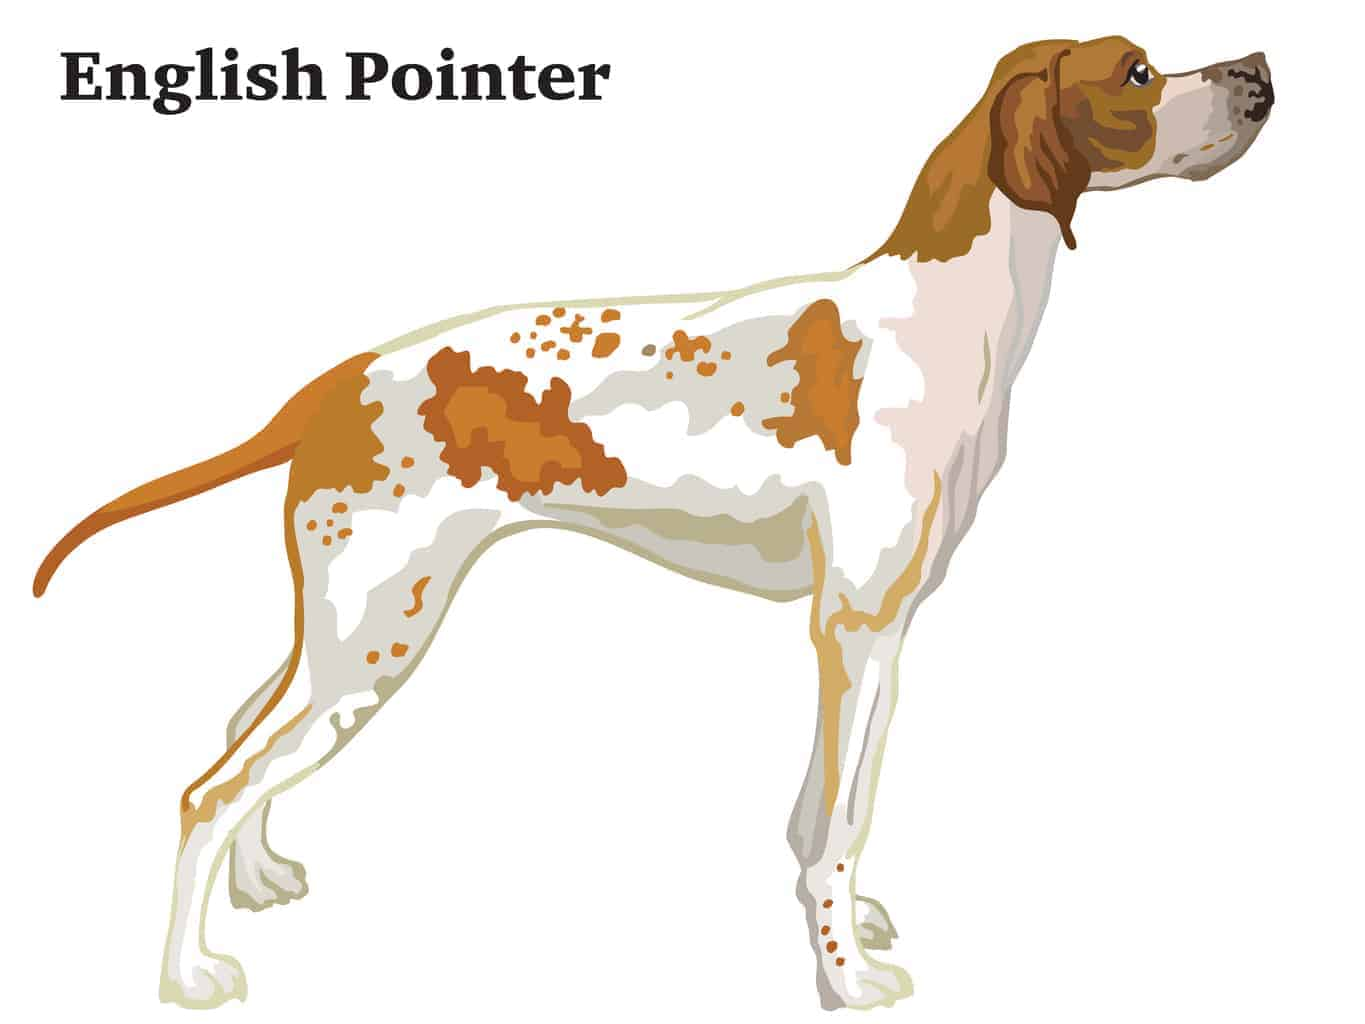 English Pointer Geschichte